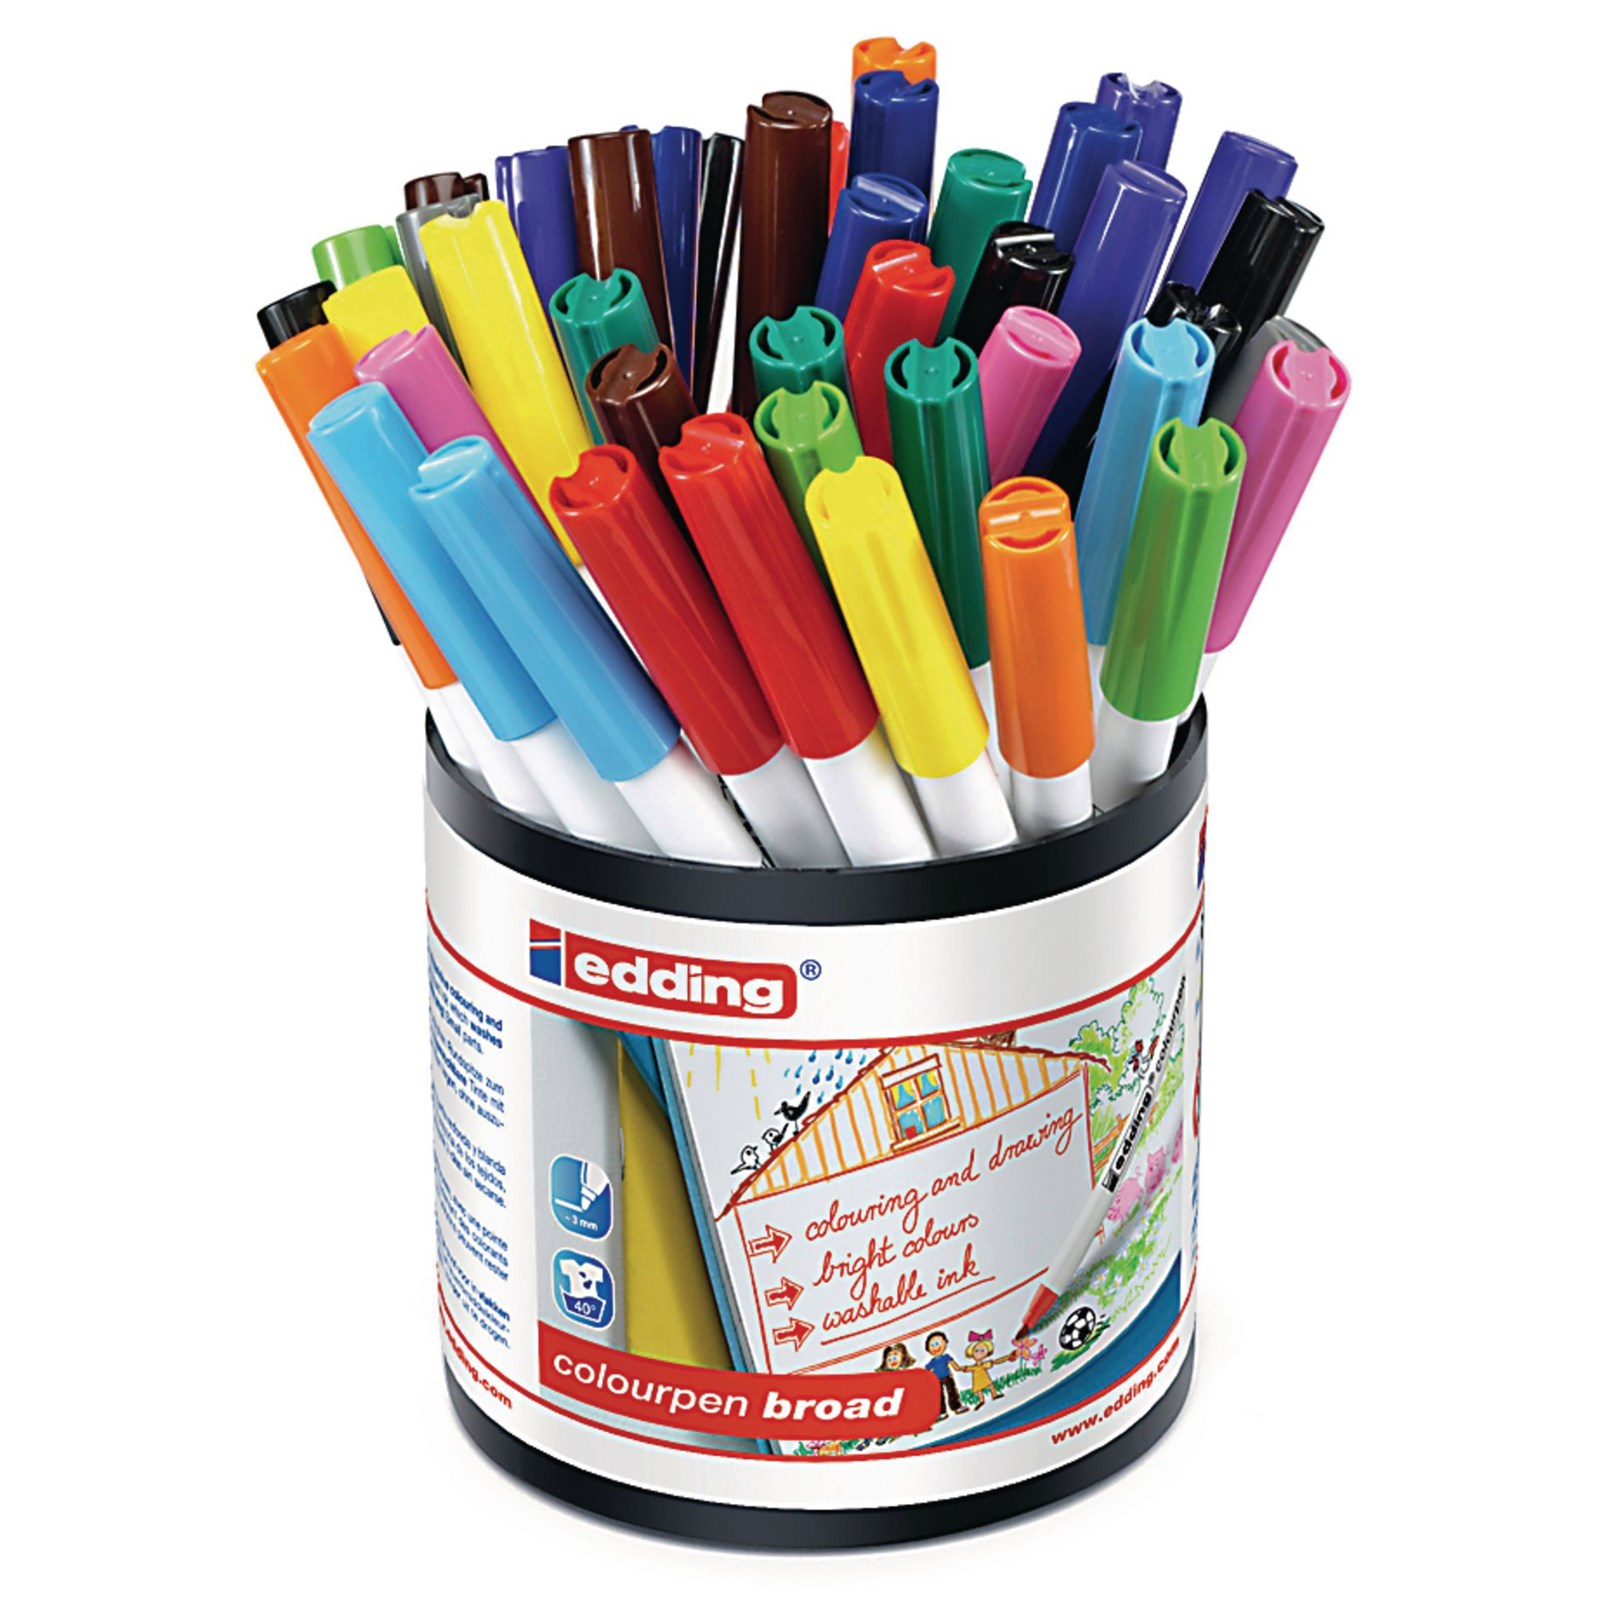 Edding Colourpen Broad - Assorted - Pack of 42